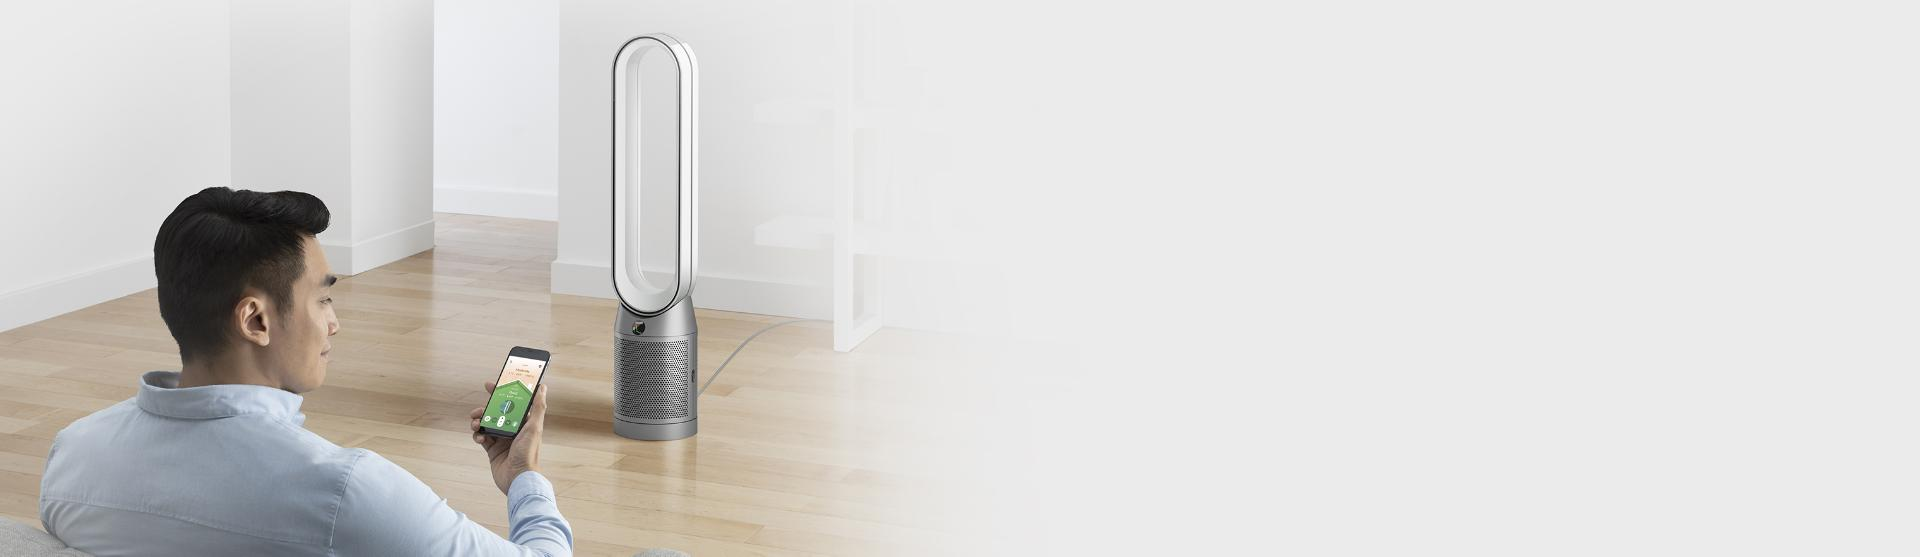 Man sits in front of Dyson purifier using the Dyson Link app on a smart phone